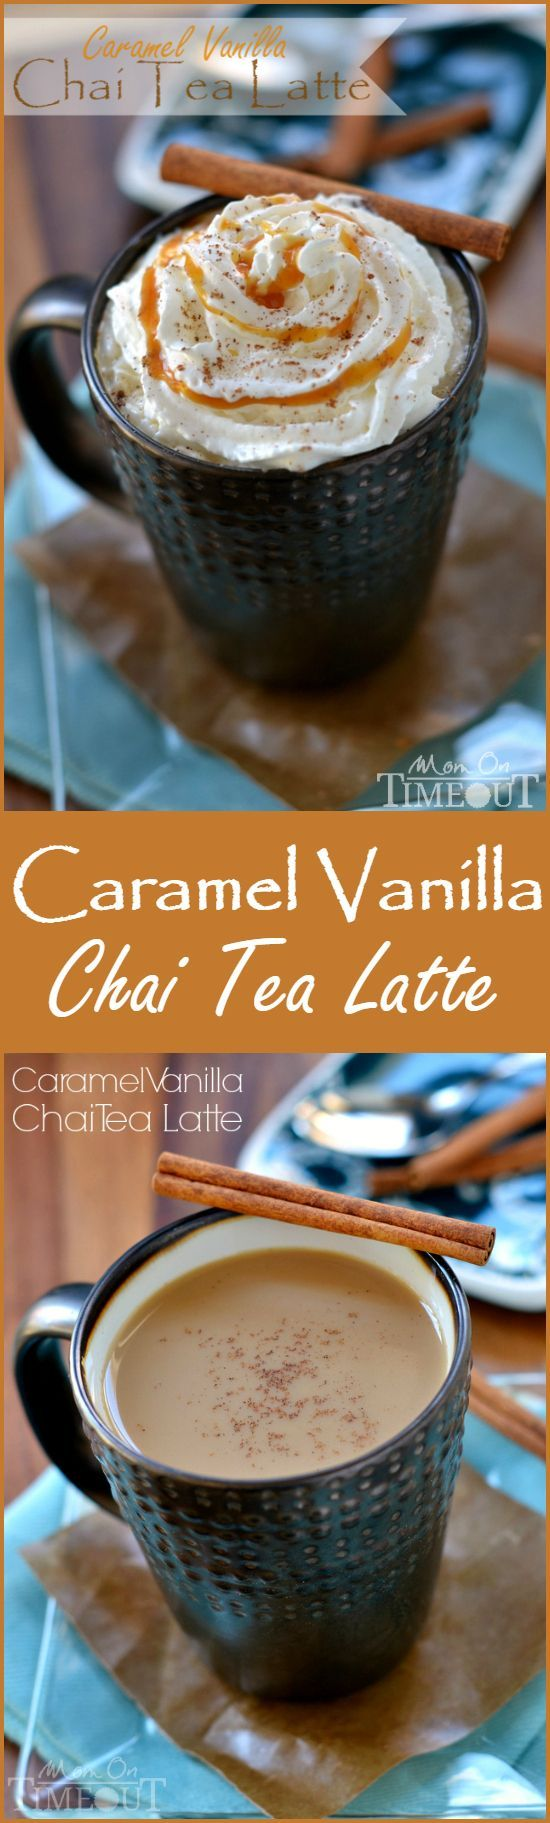 Caramel Vanilla Chai Tea Latte - One of my favorite morning treats - perfect for those days when I have a few extra minutes!